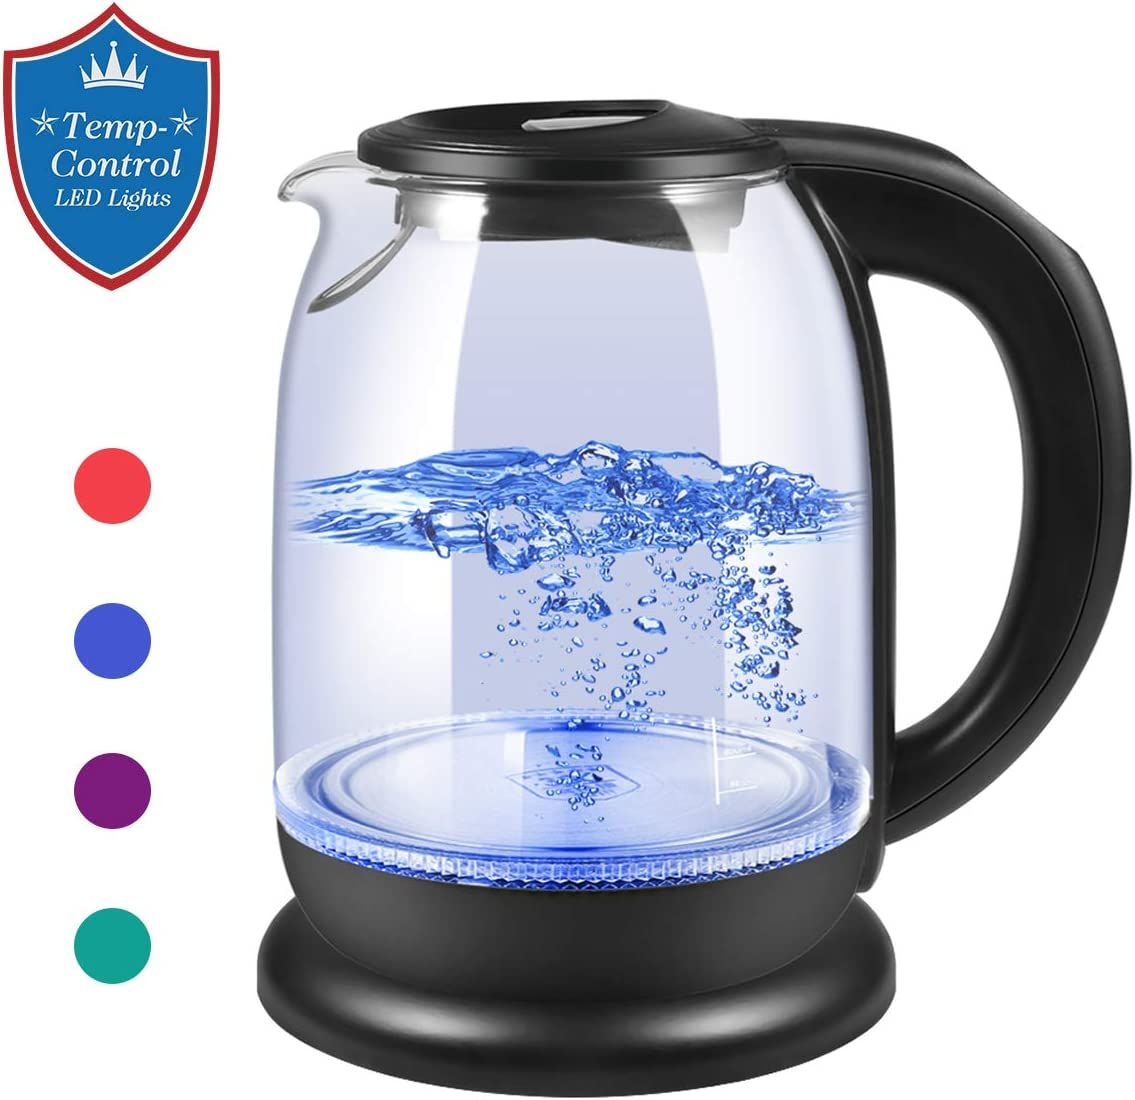 Electric Kettle, Glass Tea Kettle Water Boiler Variable Temperature Control Tea Heater with LED Indicator Light Change Auto Shut-Off, Boil-Dry Protection, Keep Warm 1.7 L Tea Kettle